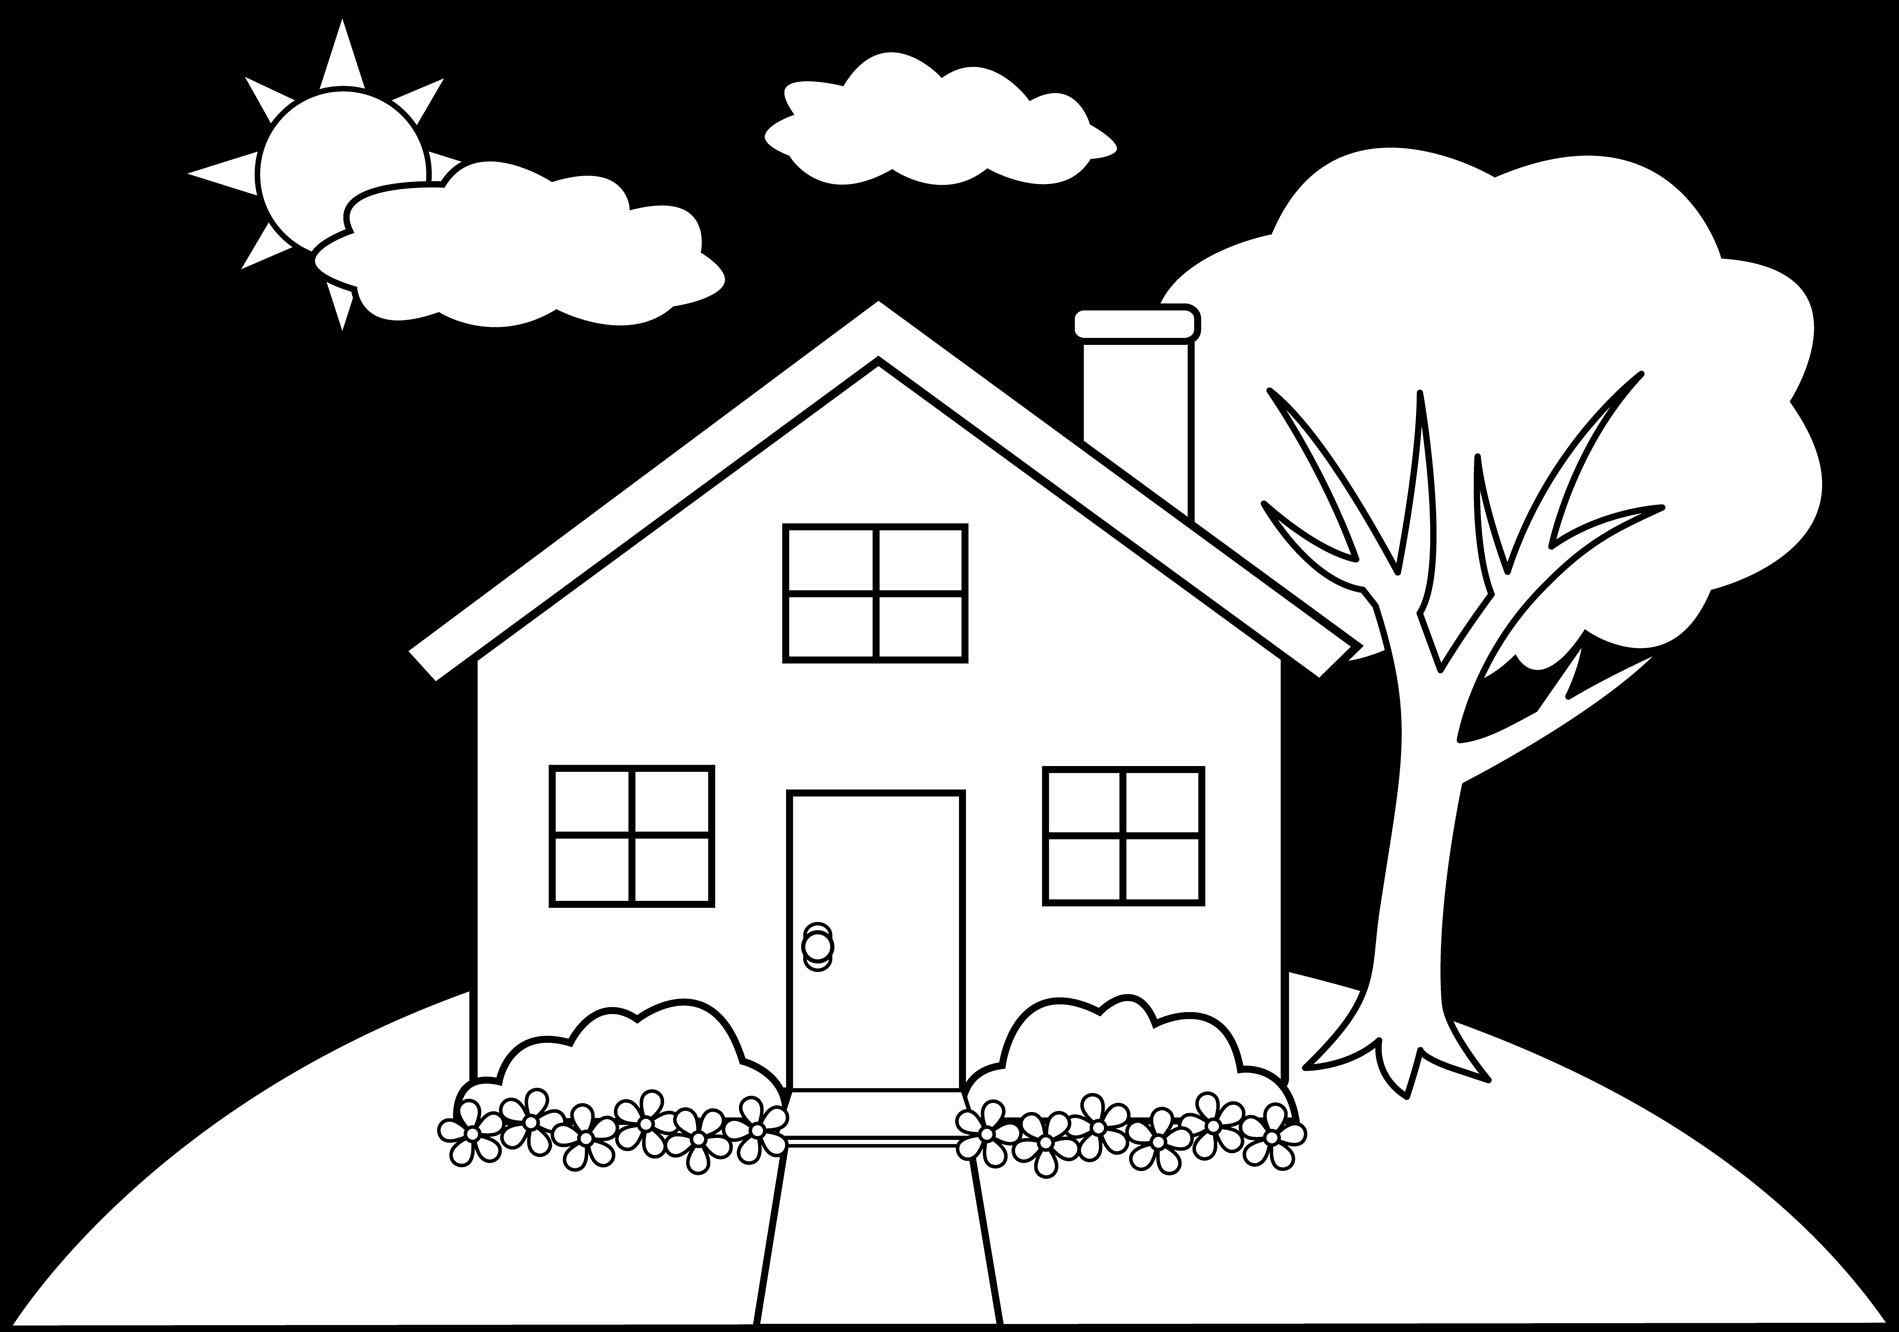 coloring outline of a house house line drawing clip art at getdrawings free download outline a of house coloring